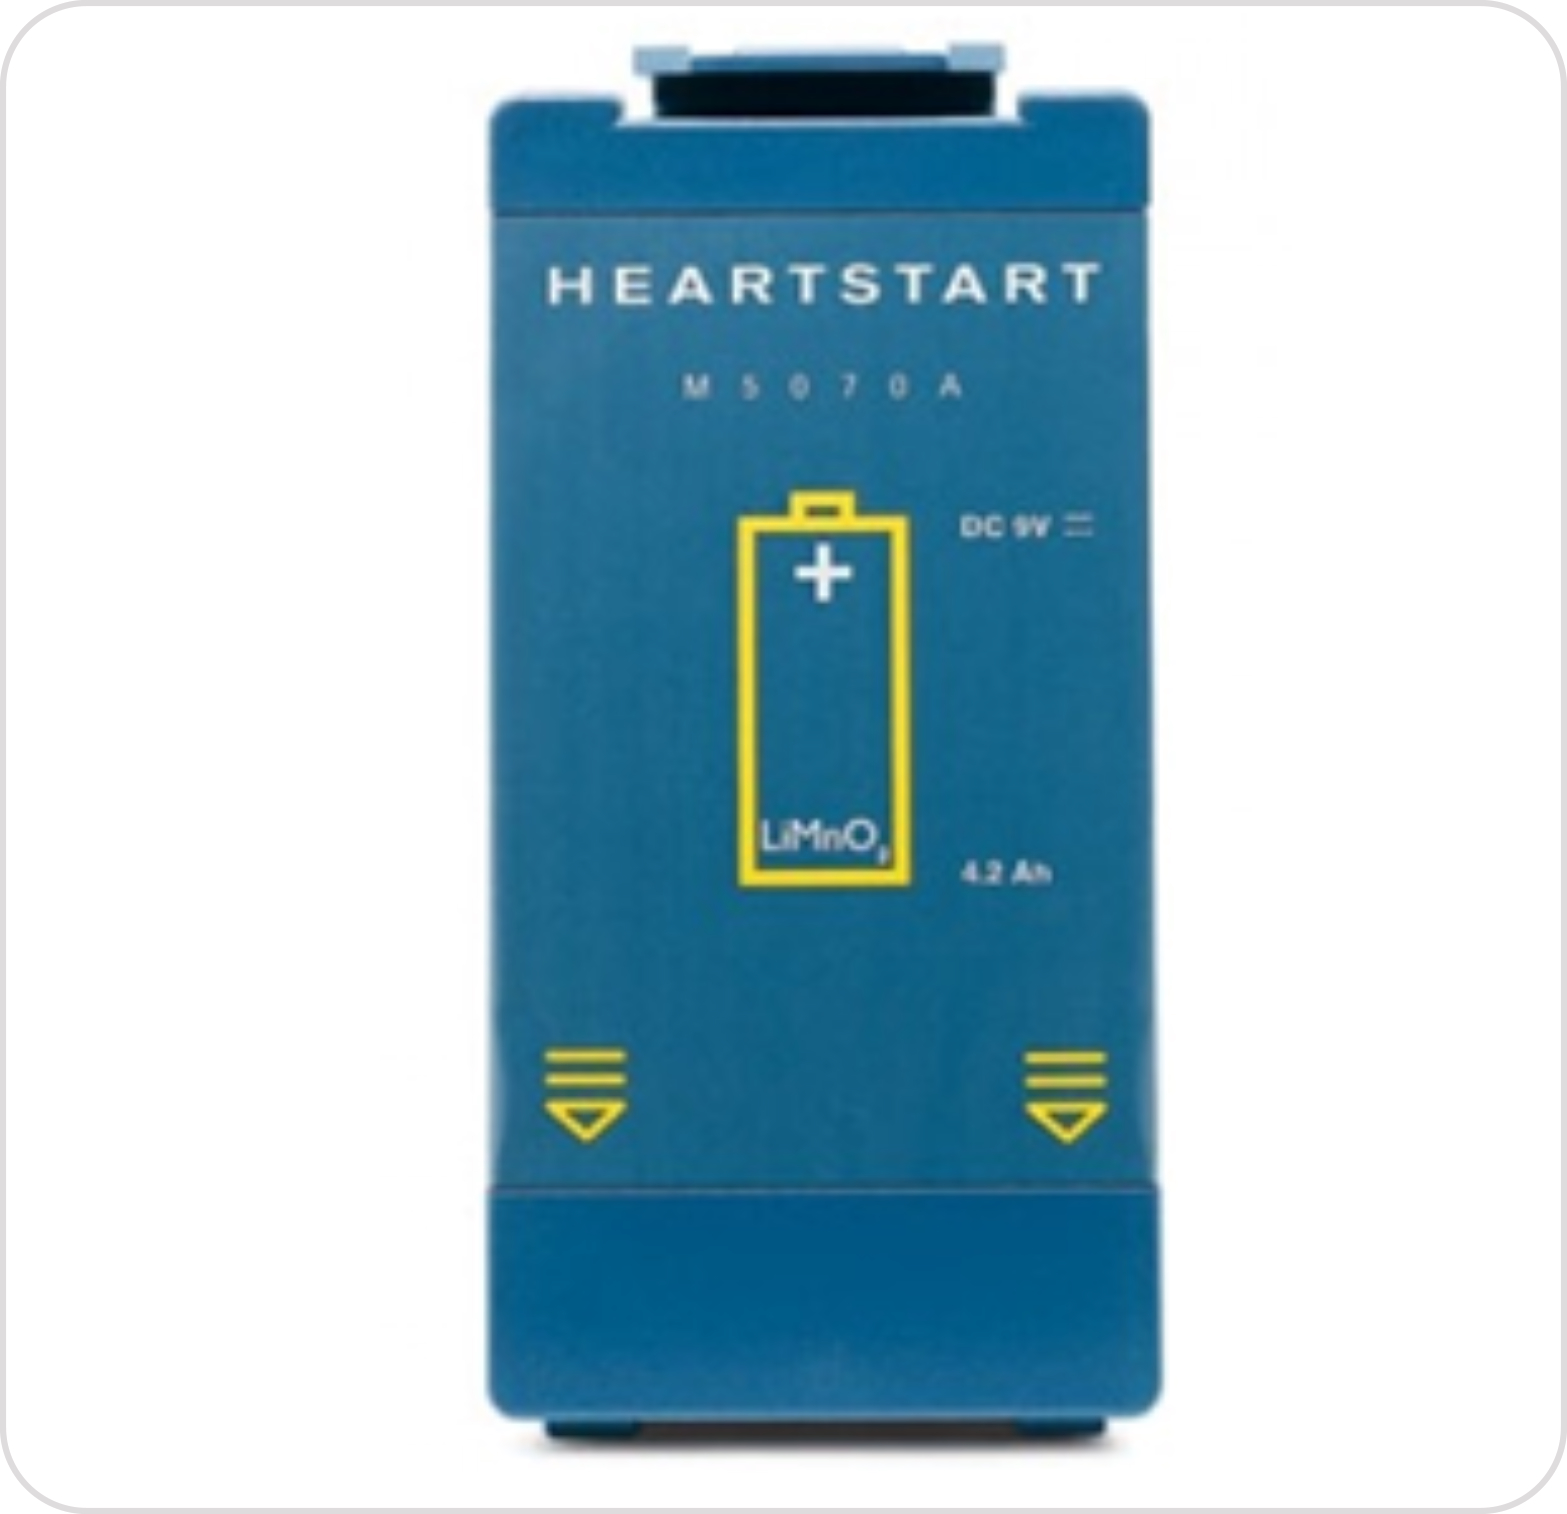 Battery For Heartstart Defibrillator